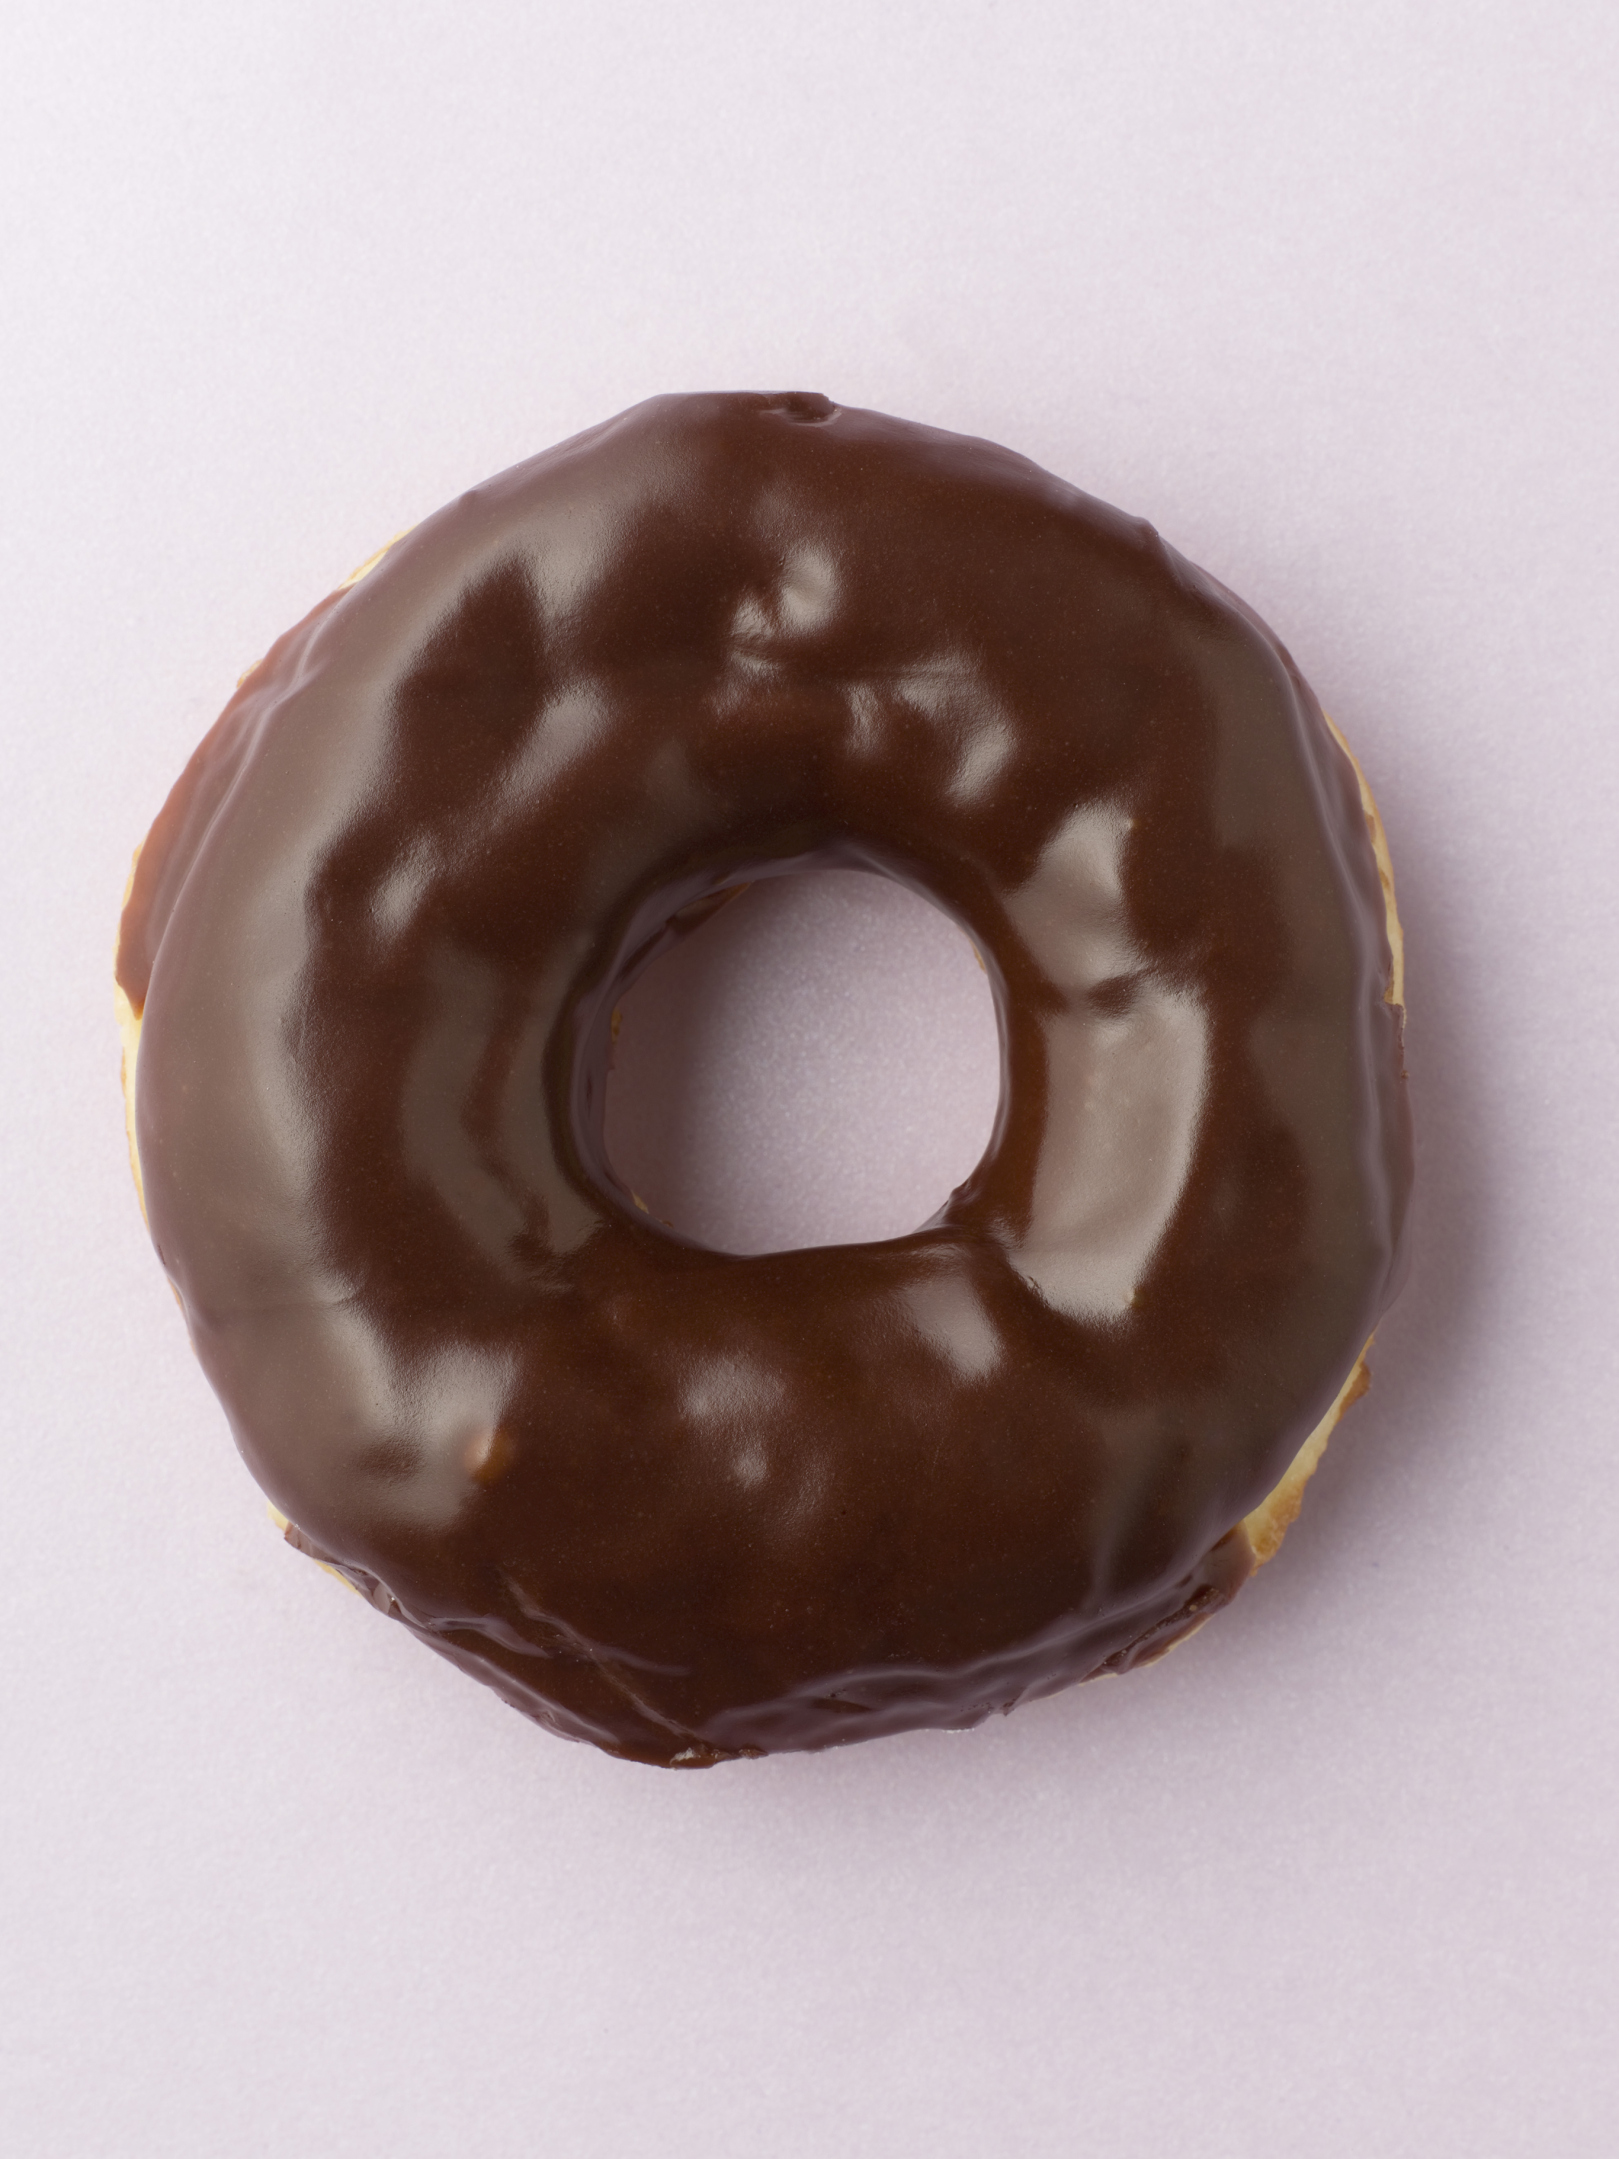 Raised donuts contain large amounts of added sugar.